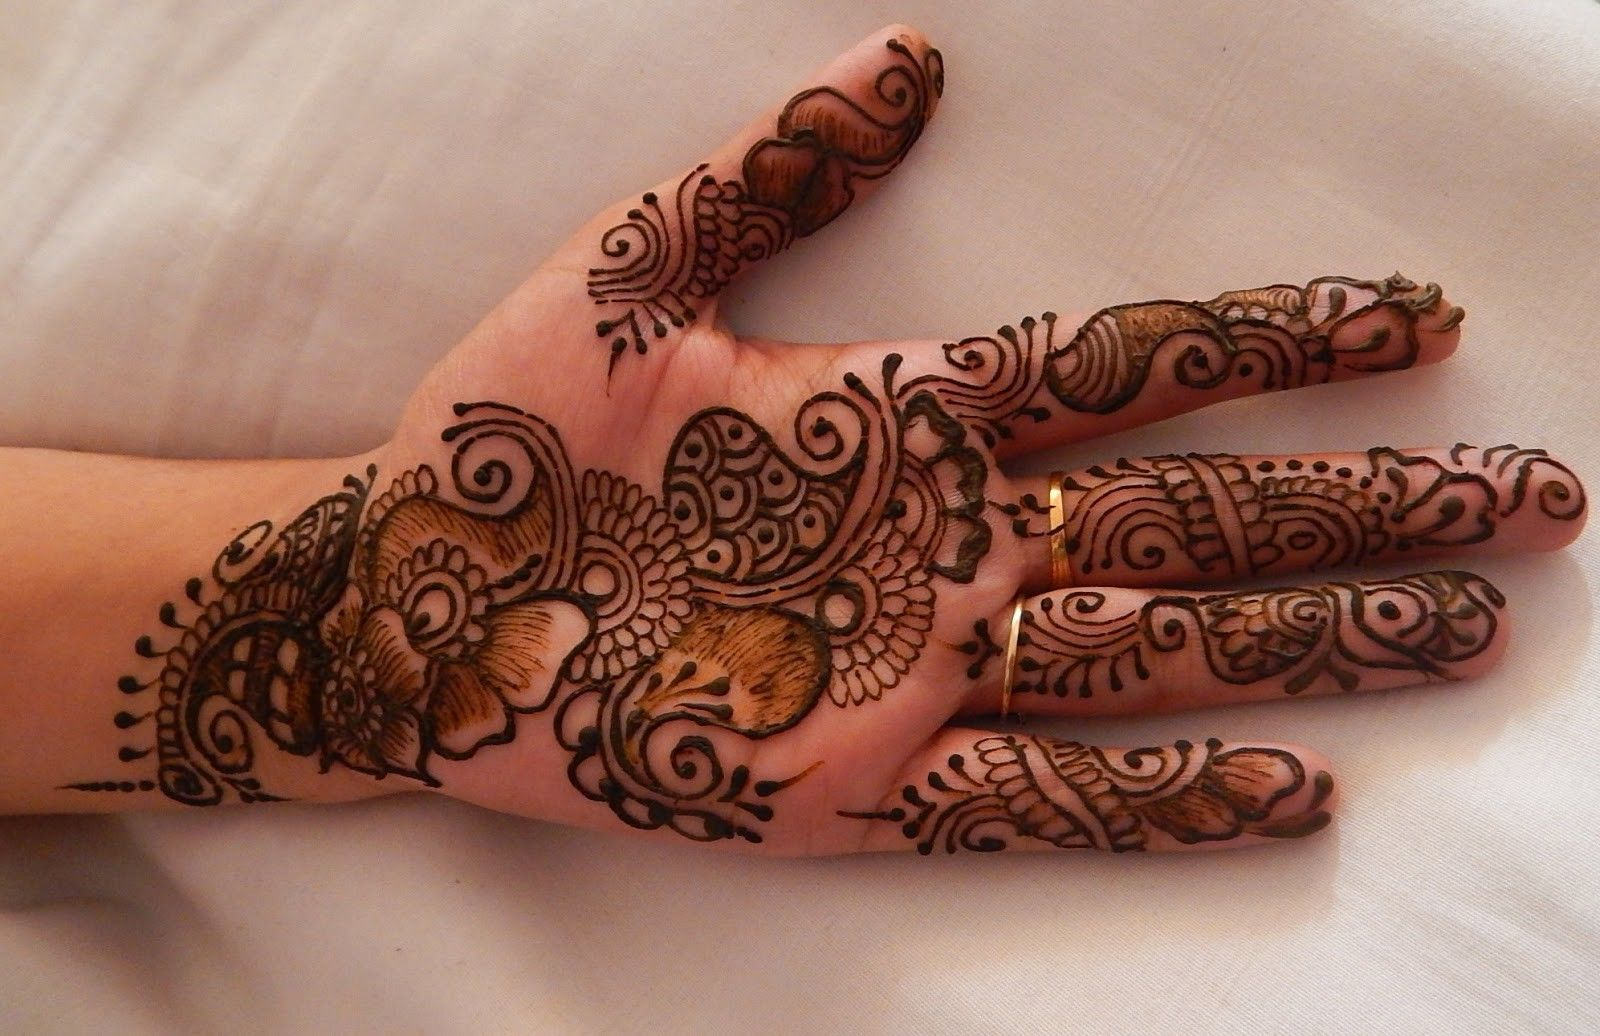 Indian mehndi designs for hands indian hand mehndi designs mehndi - Simple Mehndi Designs For Hands Step By Step Mehndi Is Popular Not Only In Native Indian And Pakistan But Also In Arabic Mehndi Designs Where It Is